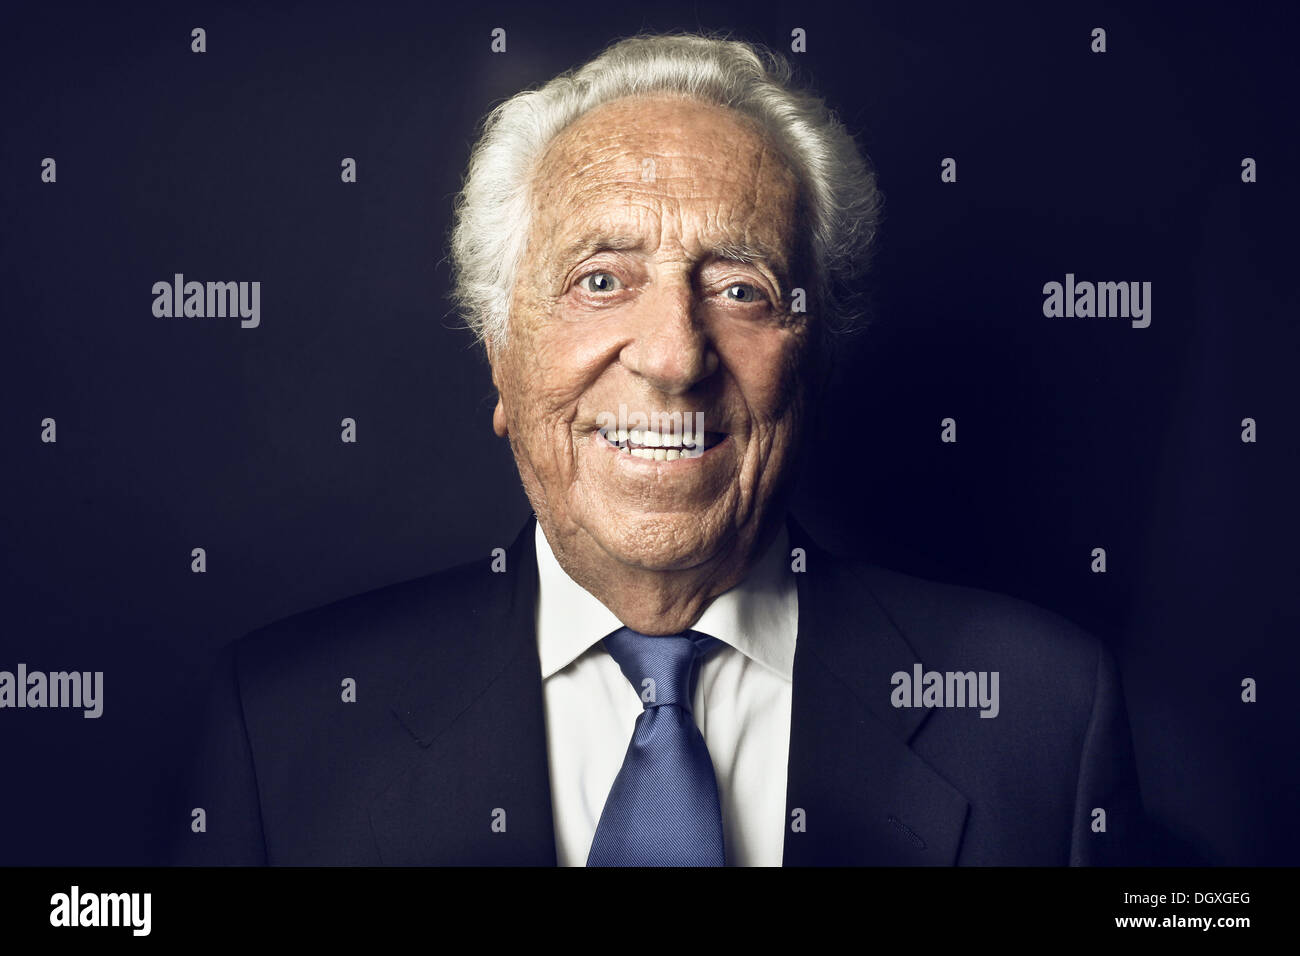 Smiling old man on a black background - Stock Image